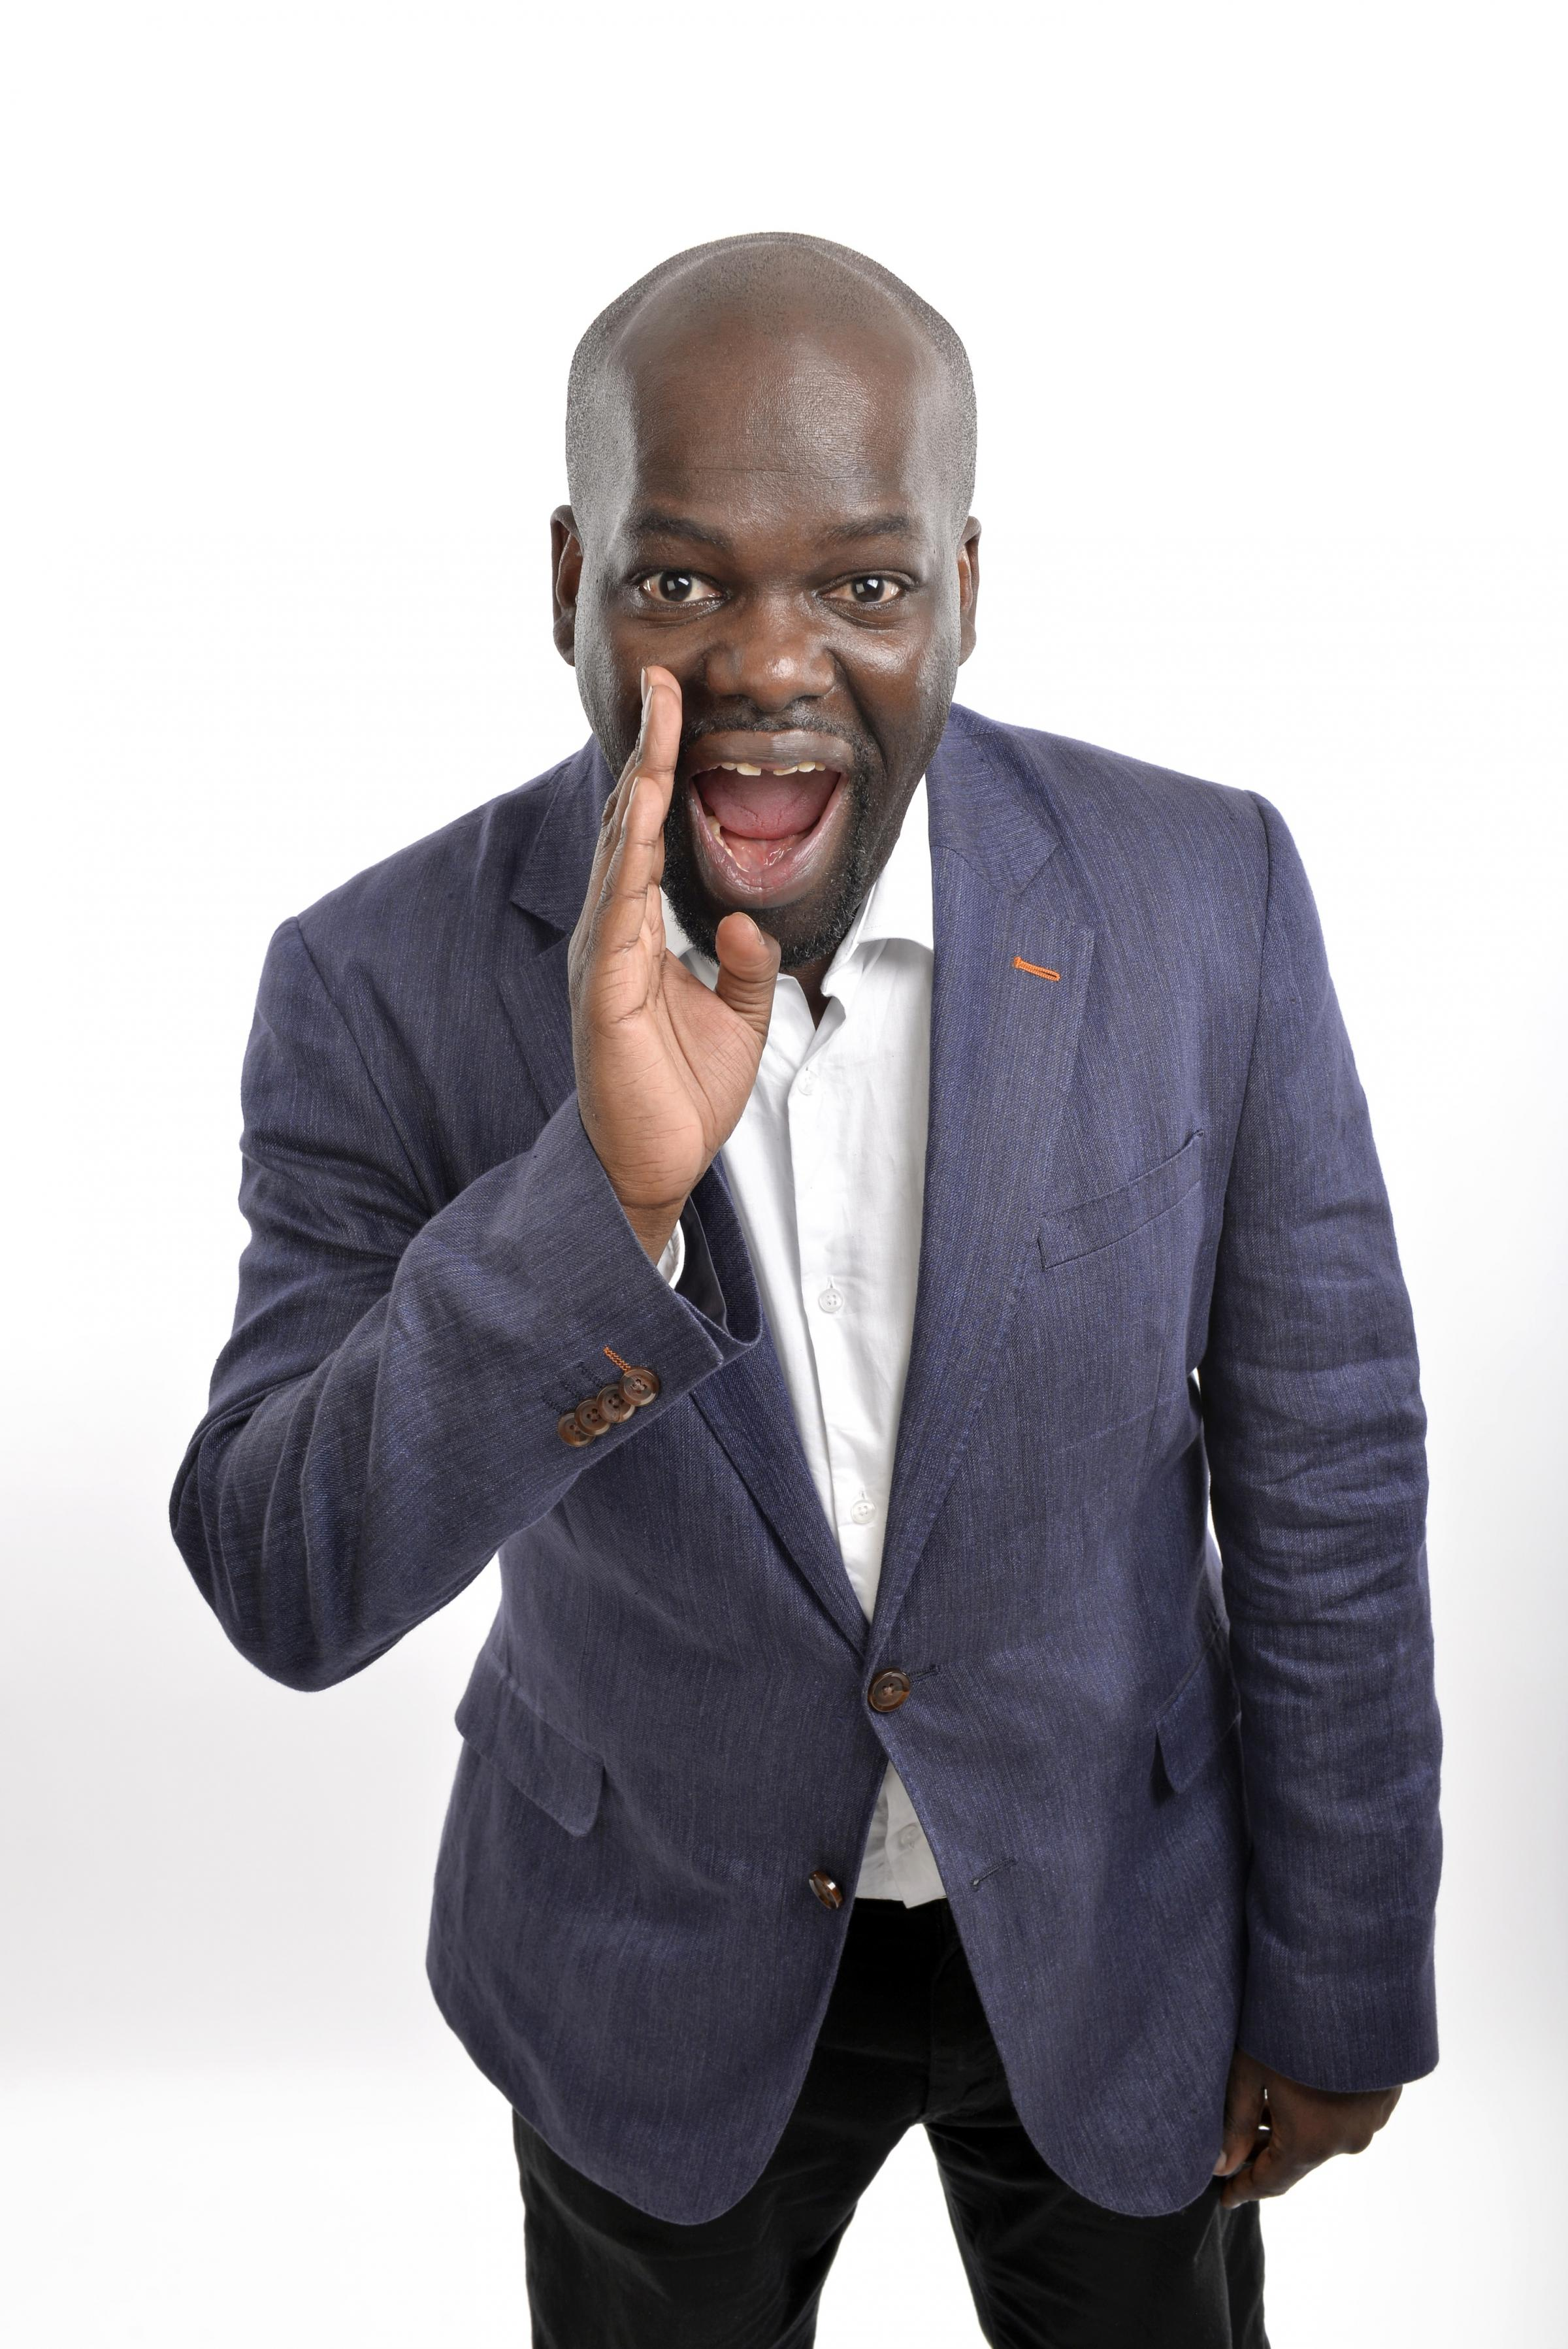 Daliso Chaponda - What the African said